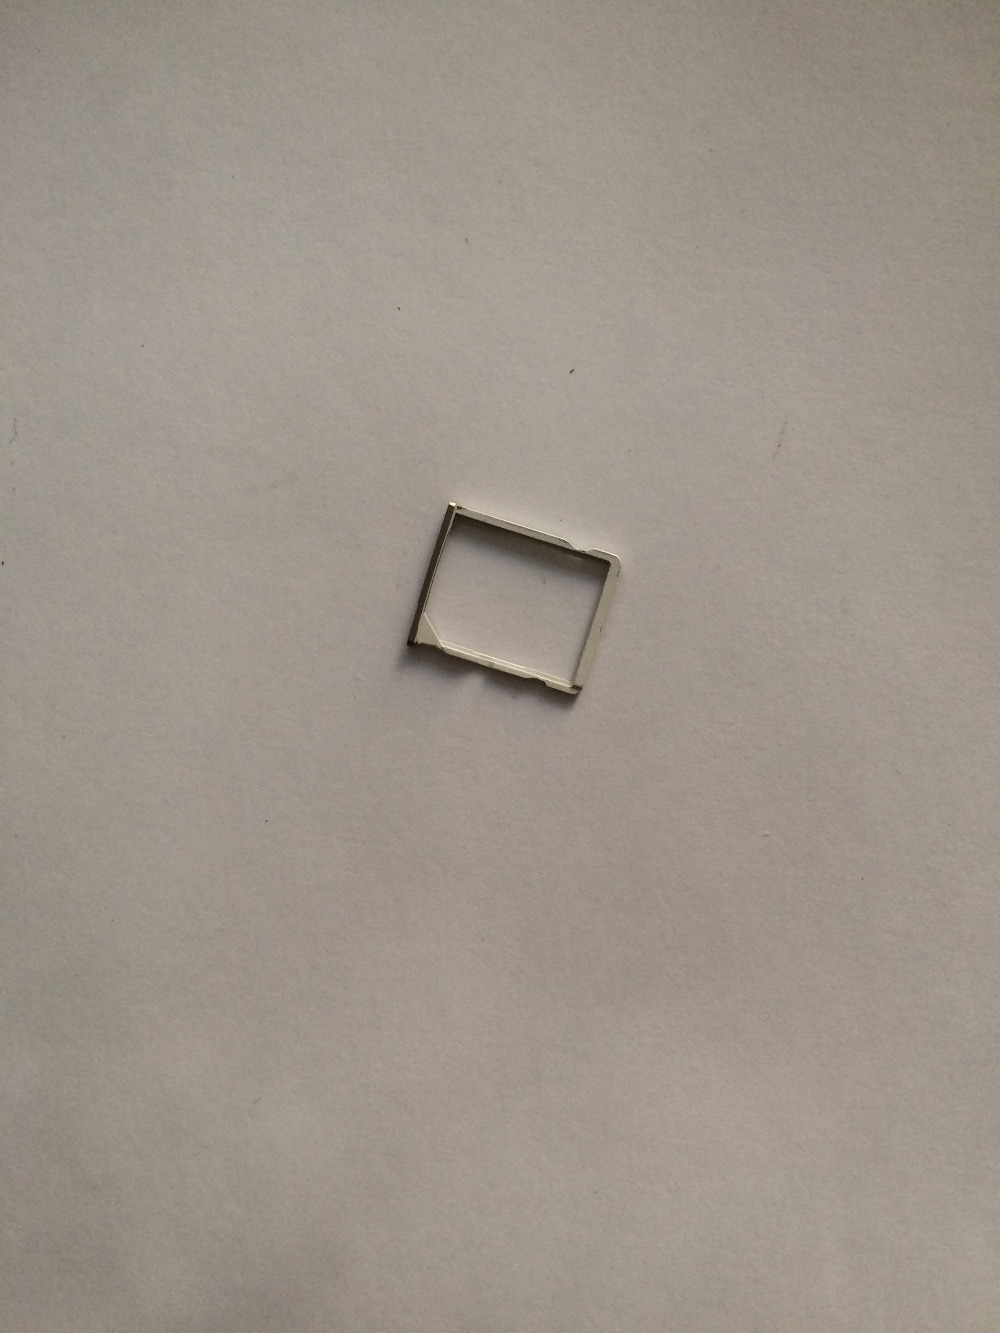 Used Sim Card Holder Tray Card Slot For Jiayu S2 MTK6592 Octa Core 5.0 FHD 1920*1080 Free Shipping+Tracking Number